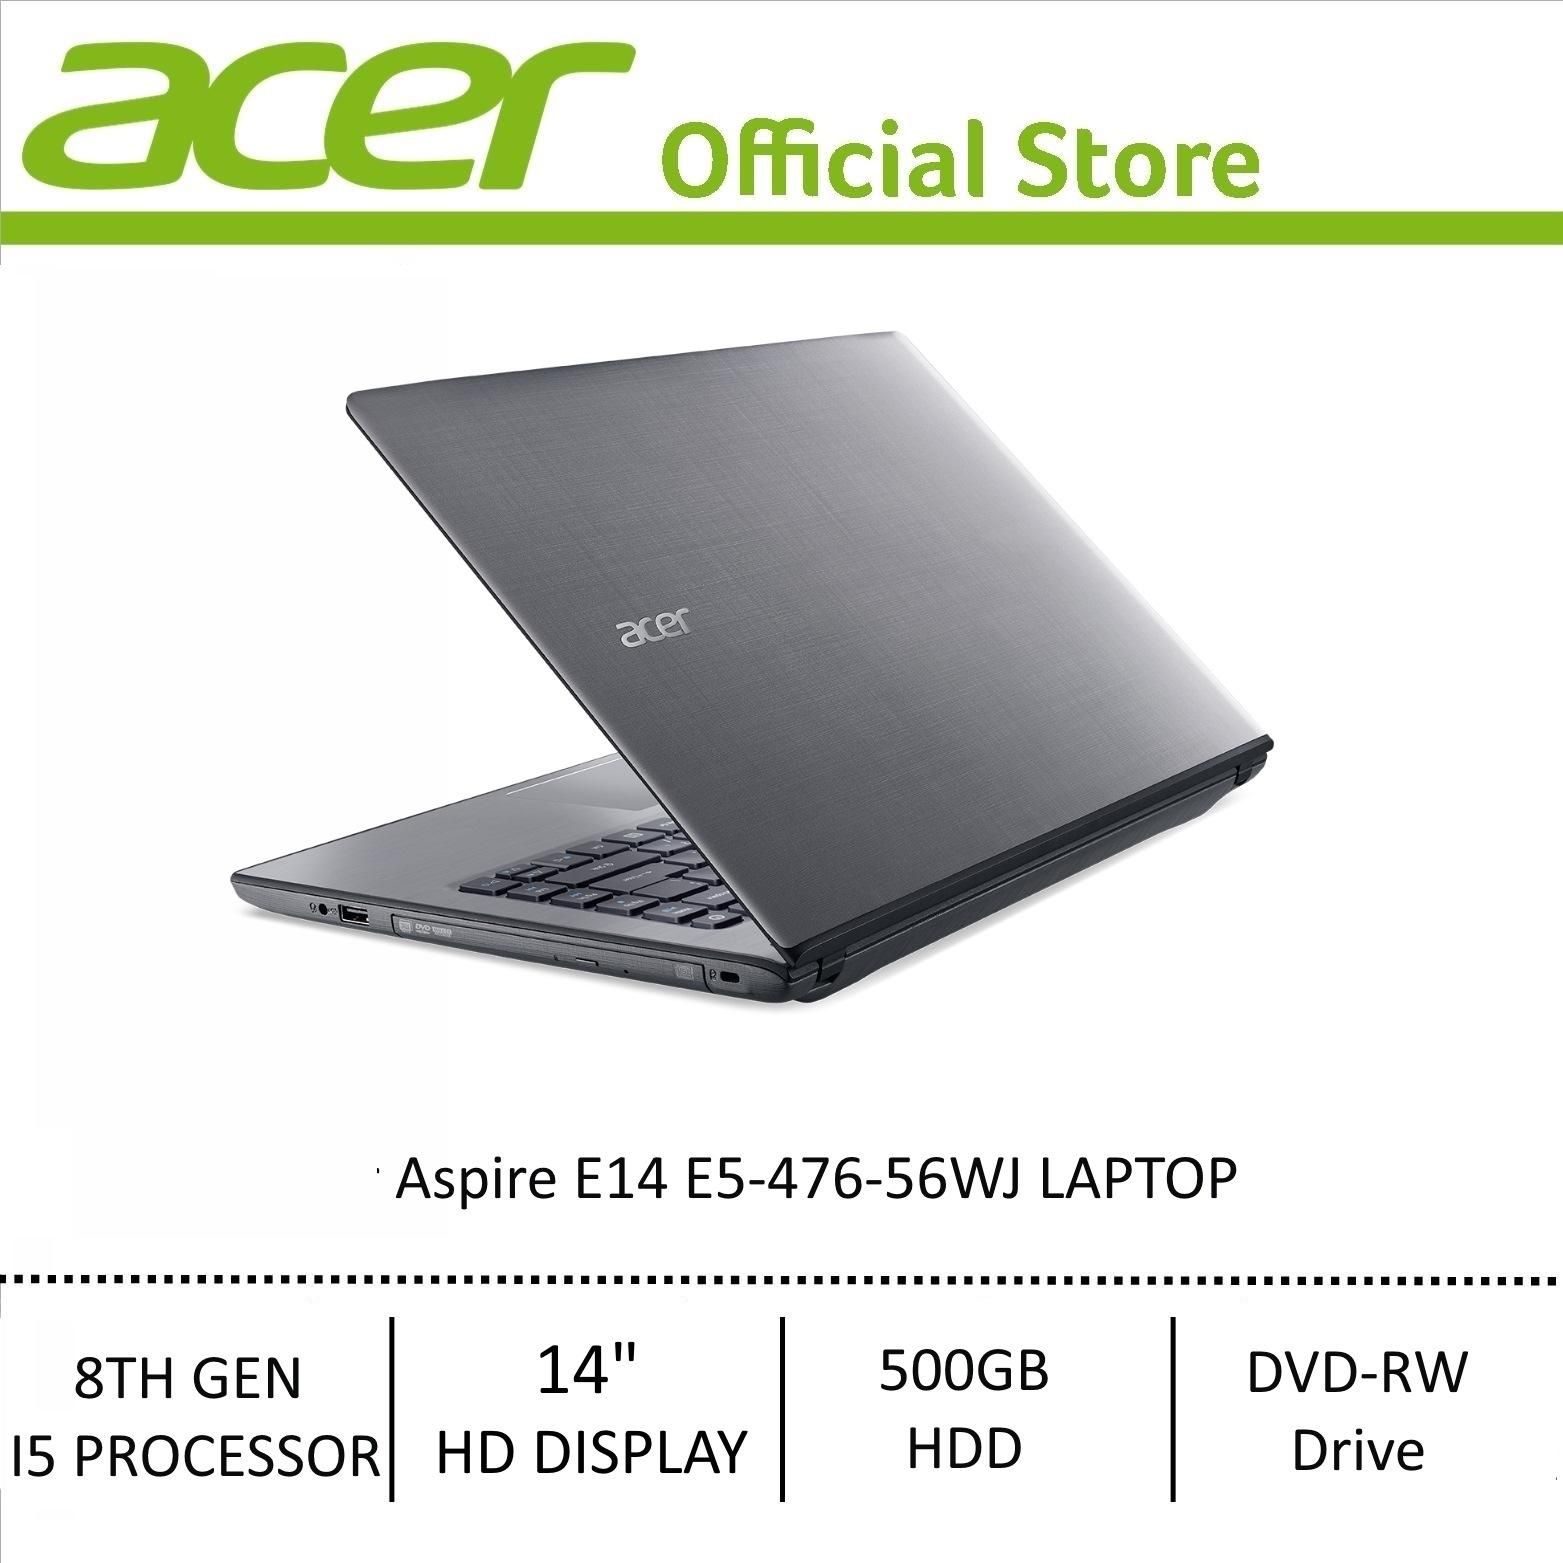 Acer Aspire E14 E5-476-56WJ Laptop